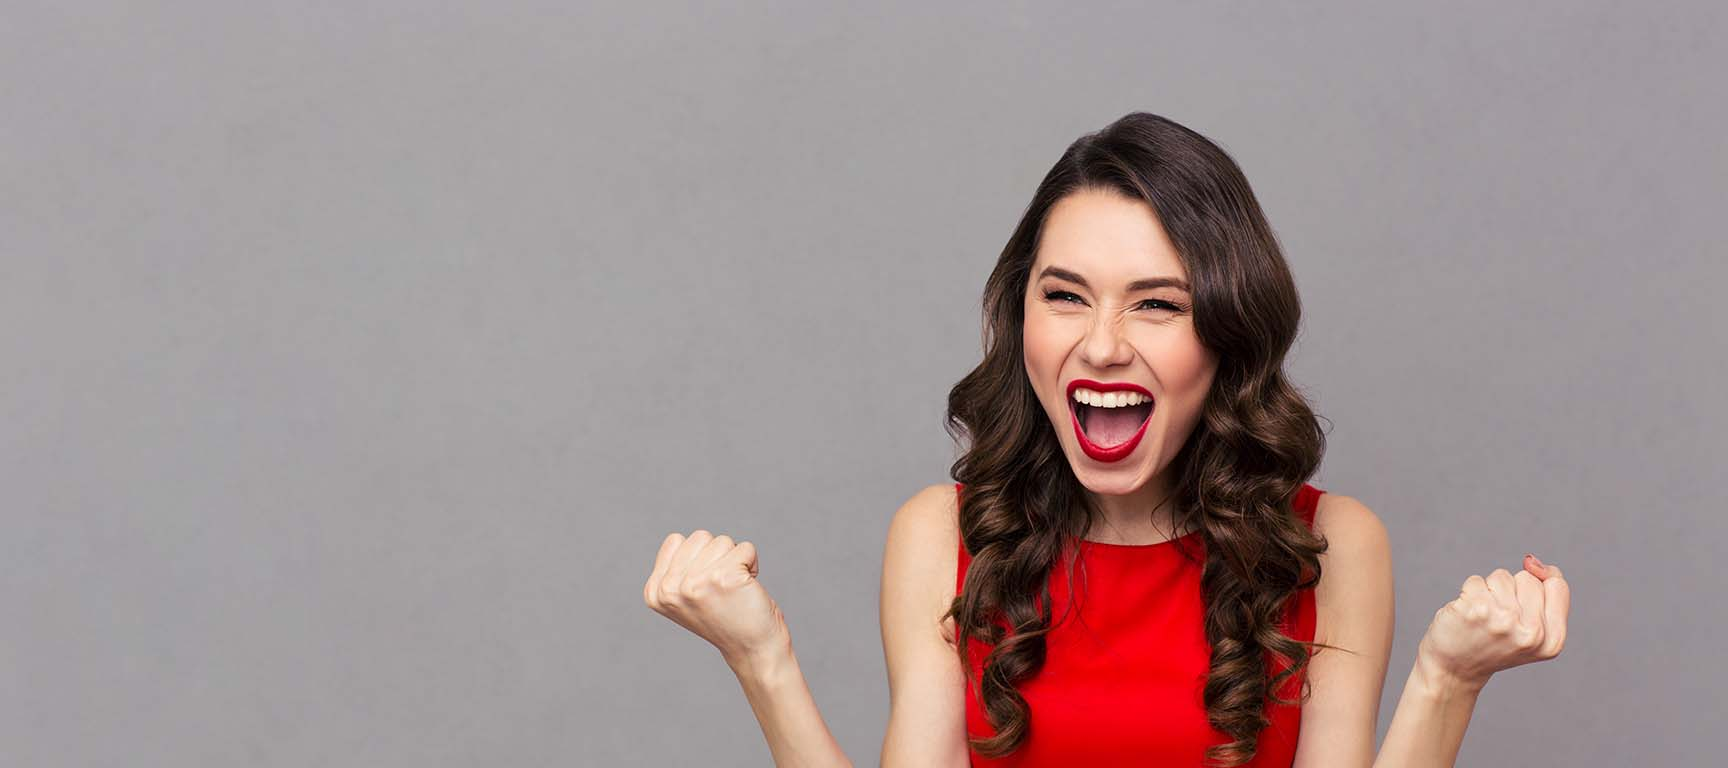 Cheerful Woman Celebrating Her Success